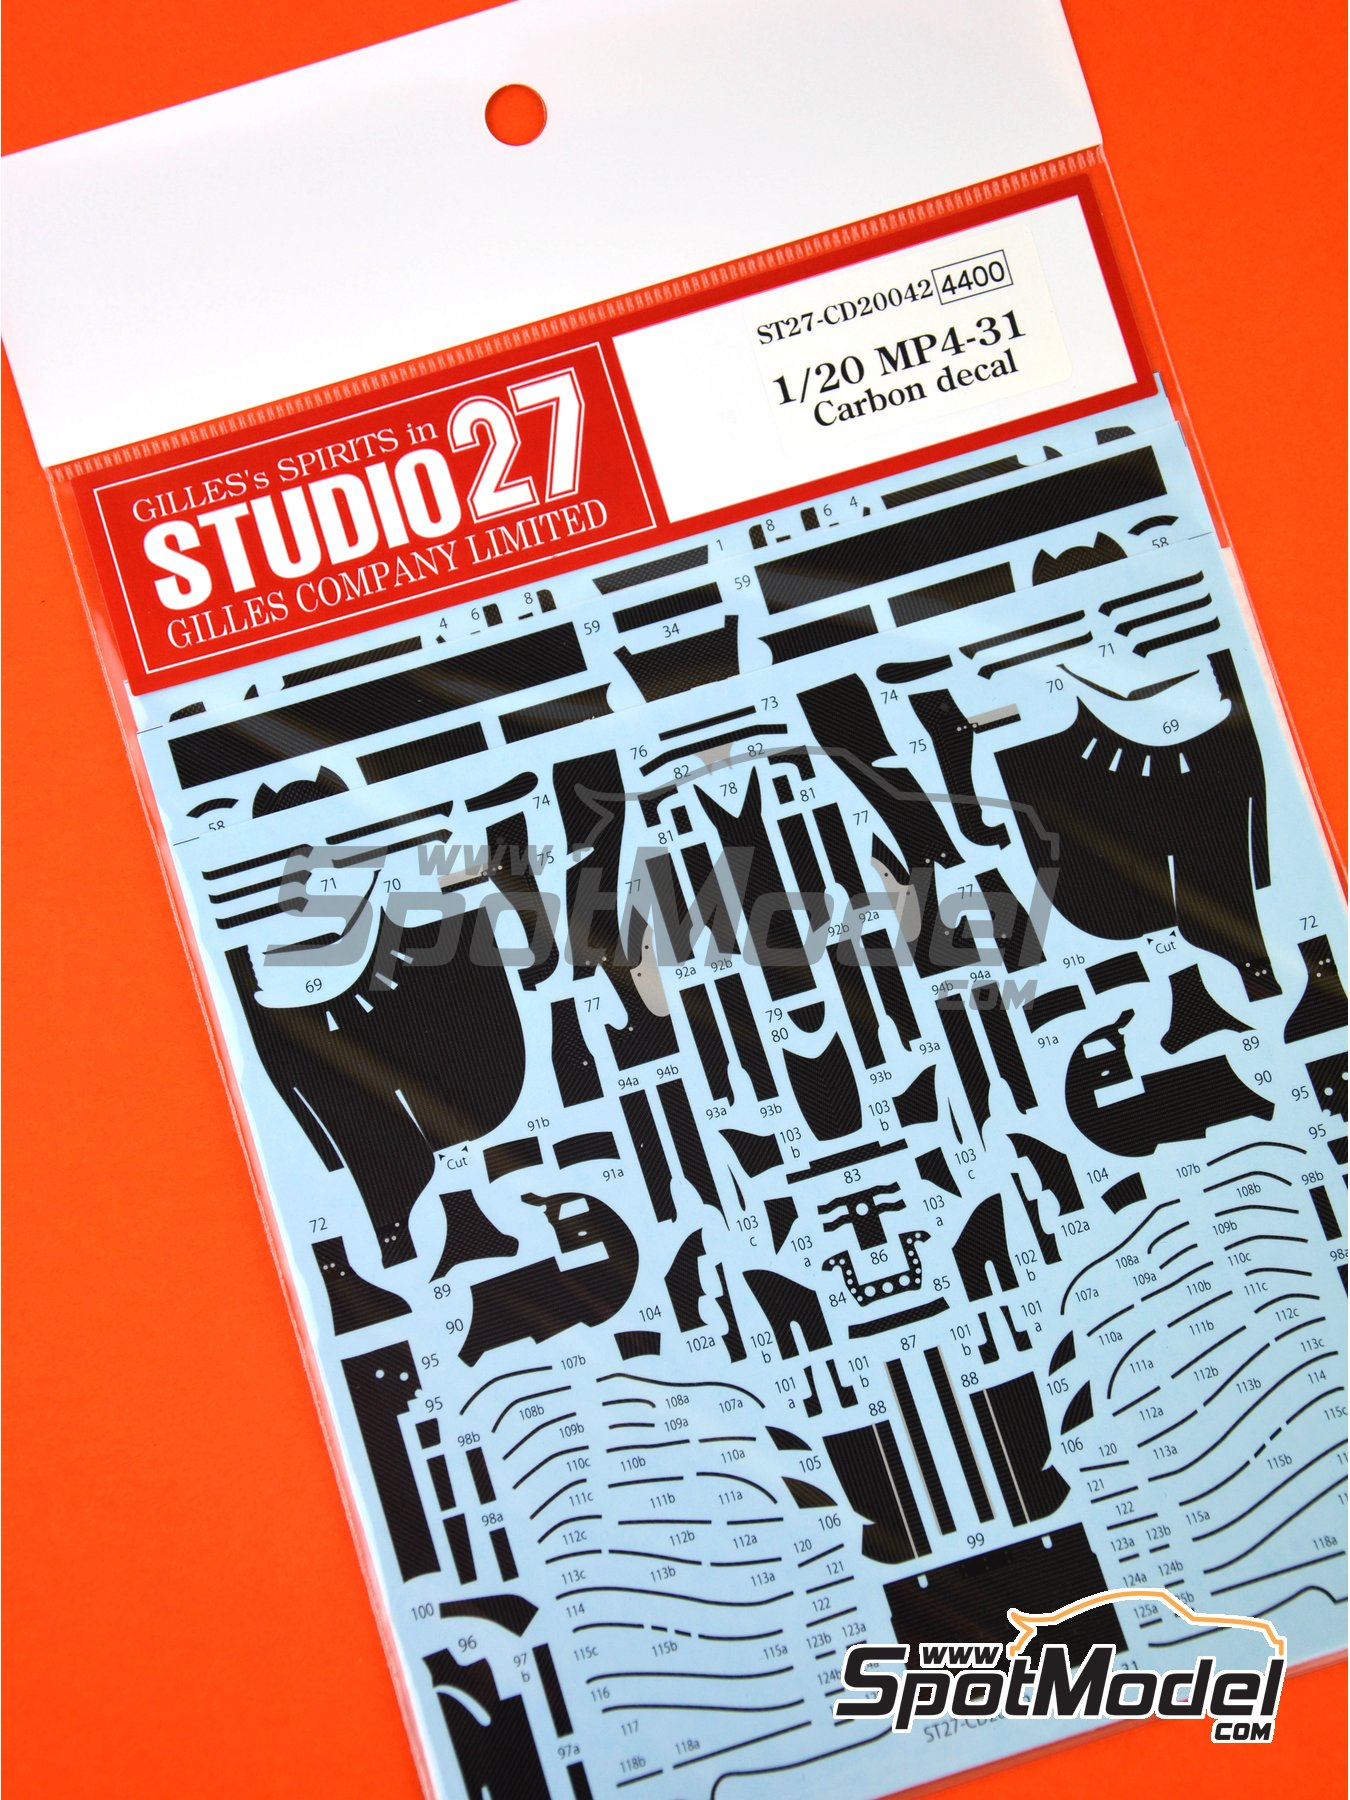 http://media.spotmodel.com/images/Studio27/ST27-CD20042.jpg